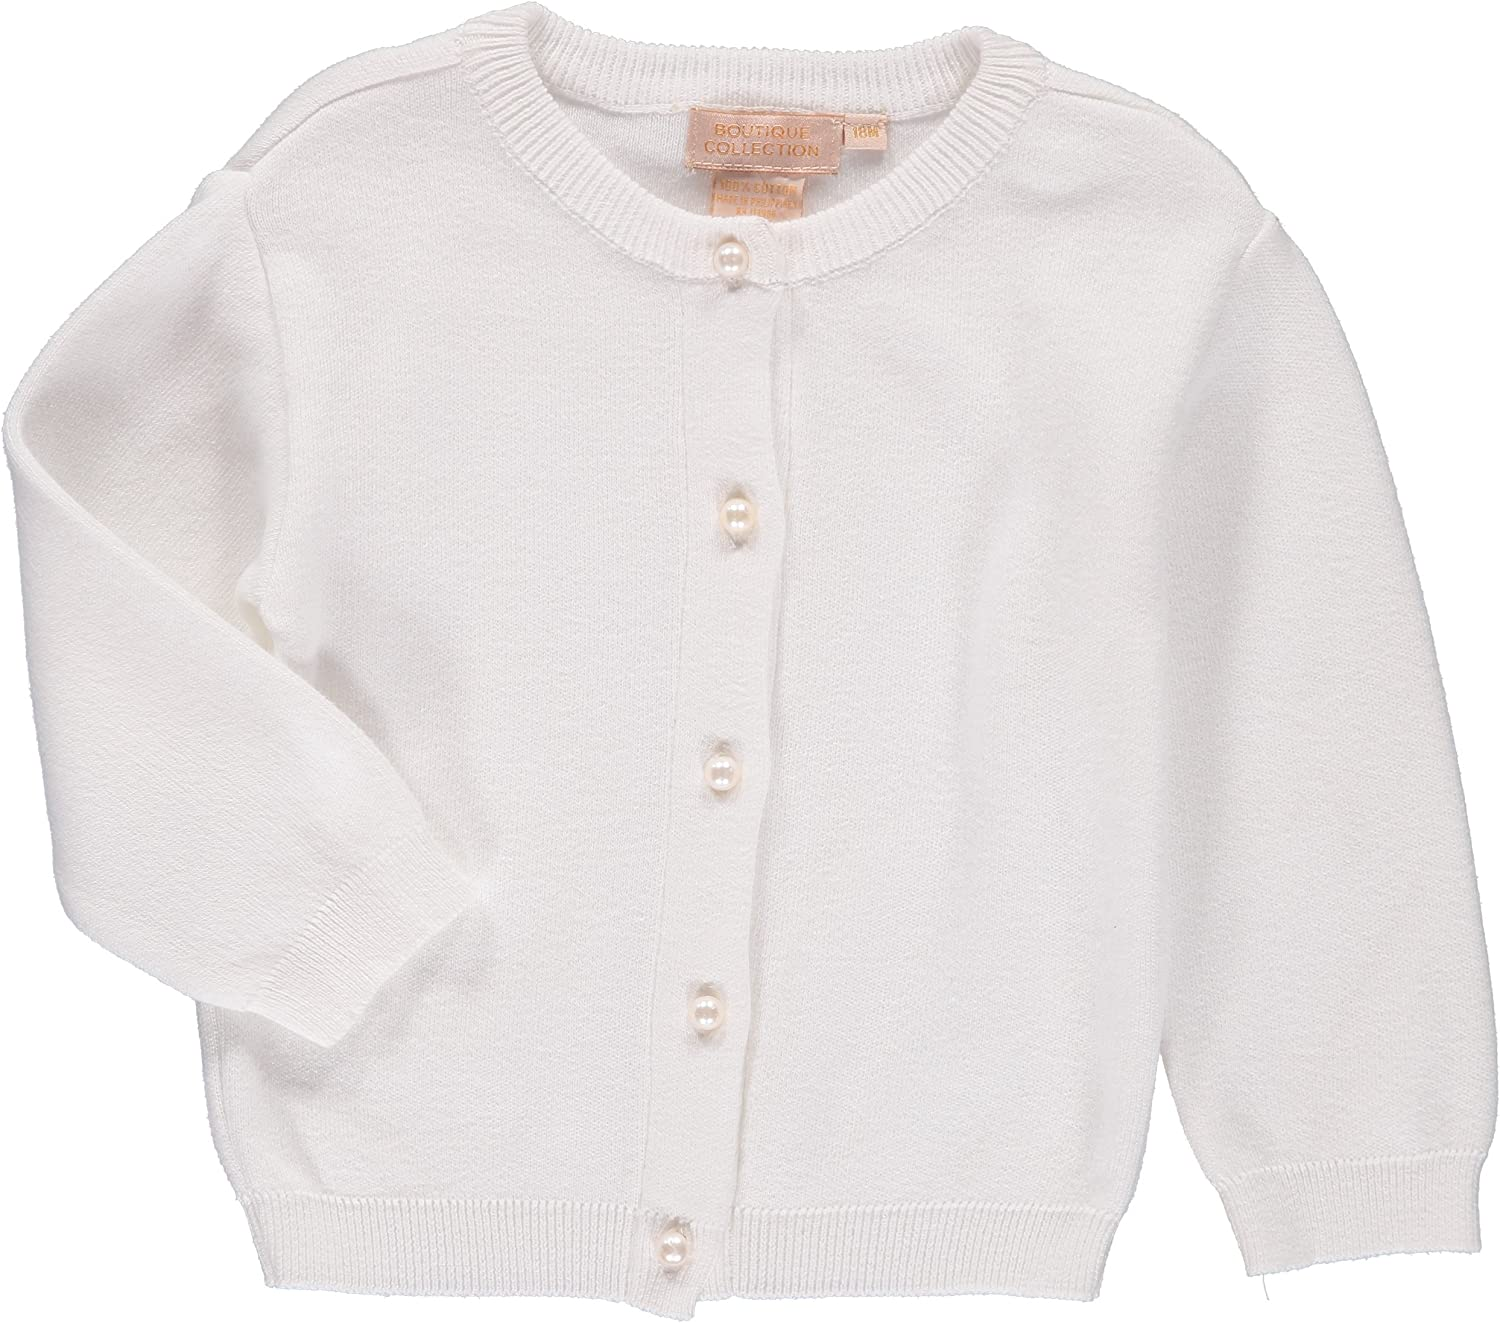 Boutique Collection Baby Girl Soft Knit Cardigan White Spring Sweater